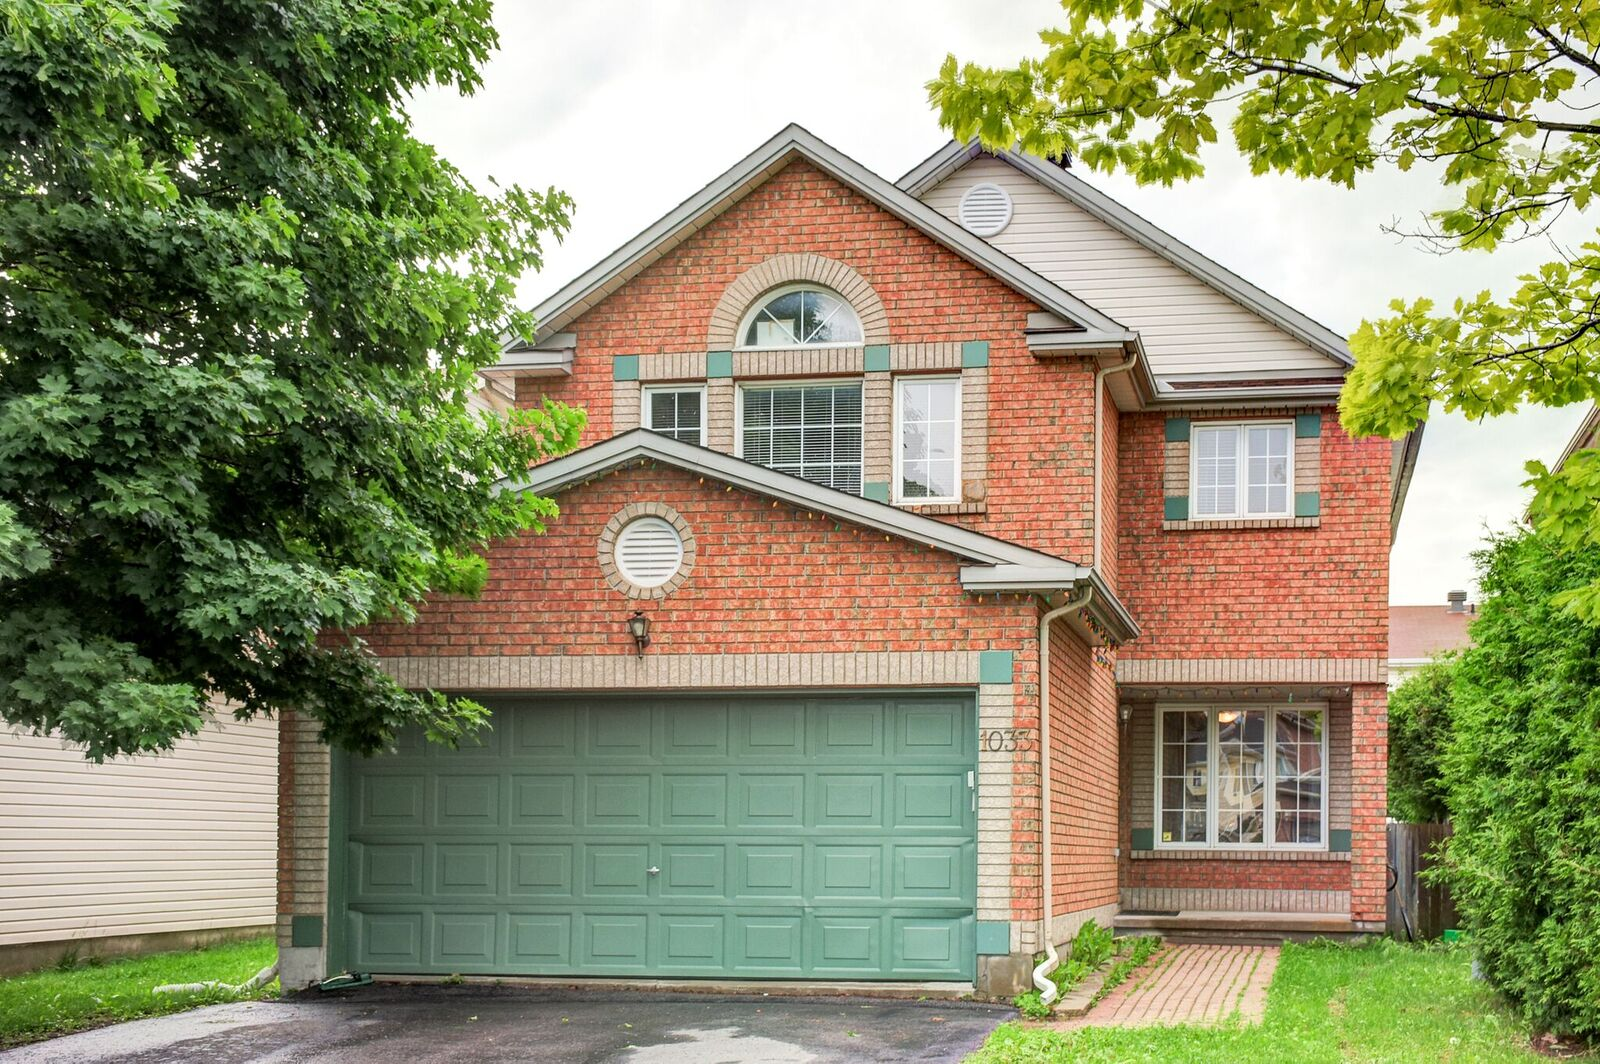 1033 Como Cres - Beautiful 4 Bedroom Detached Home in Orleans - Fallingbrook area!